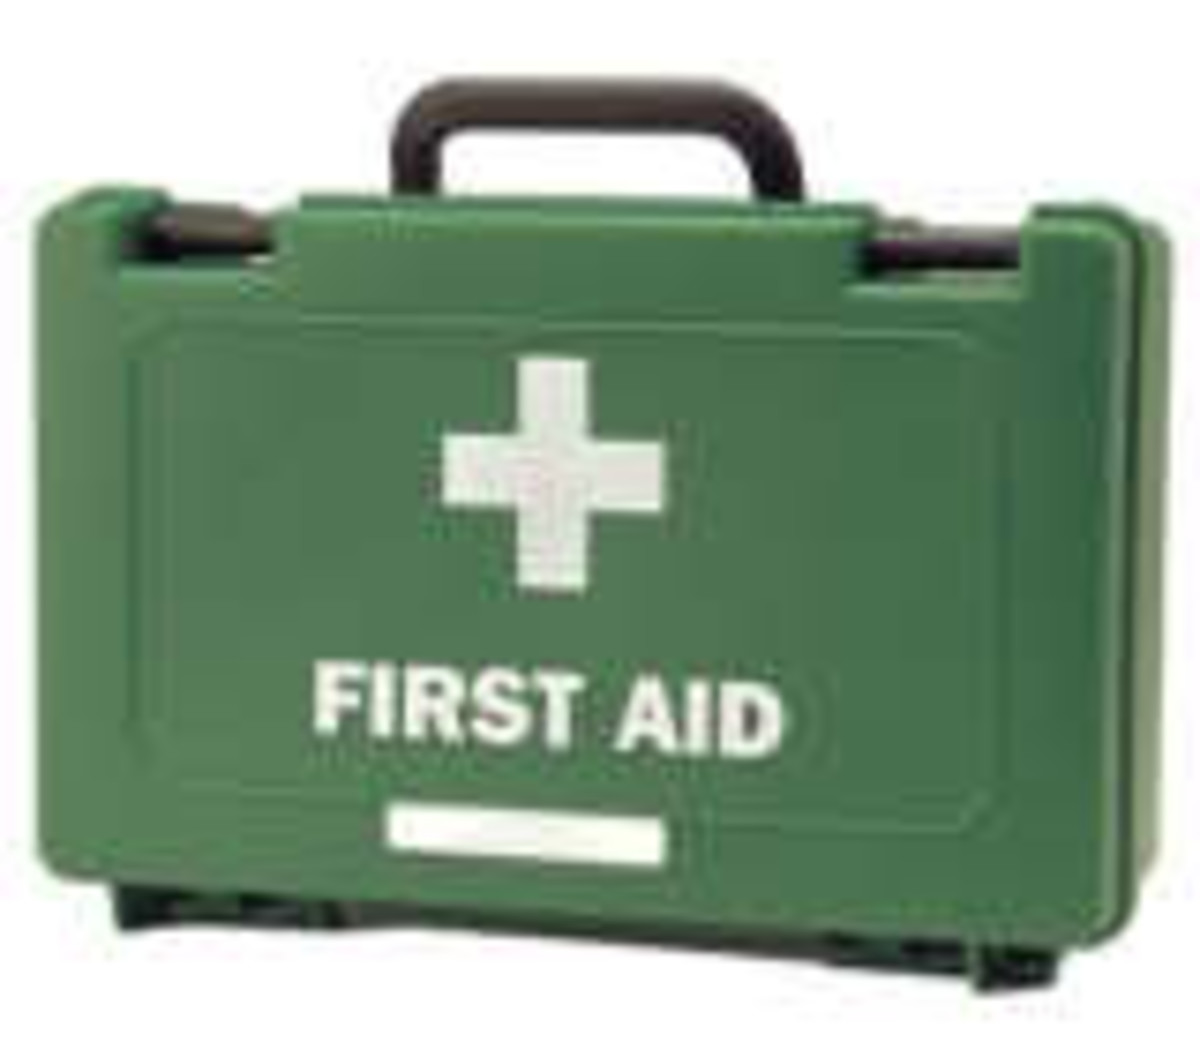 Typical First Aid box for use on school trips.